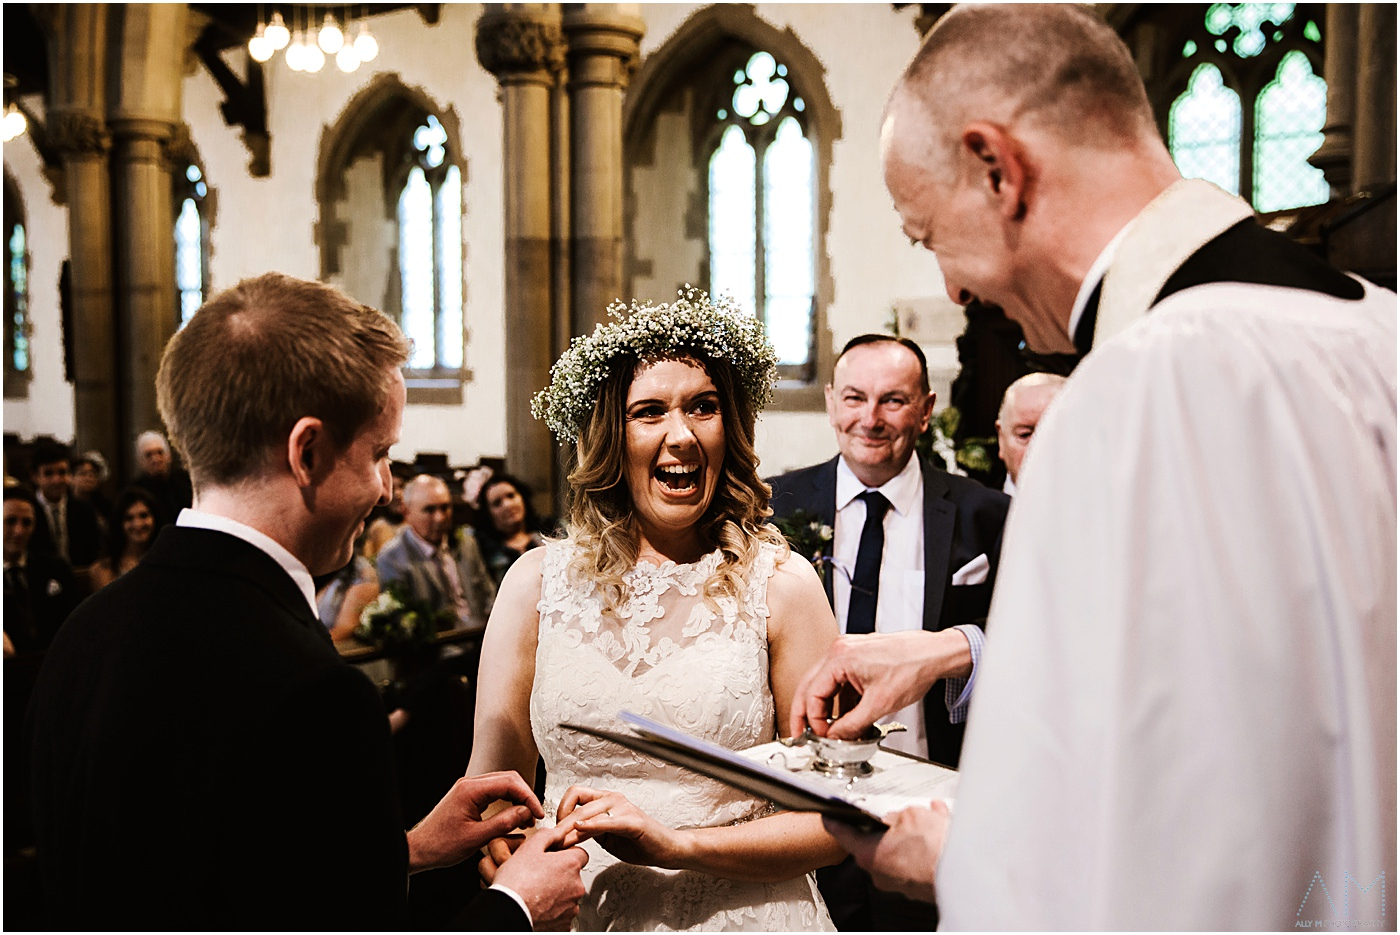 Happy bride in church